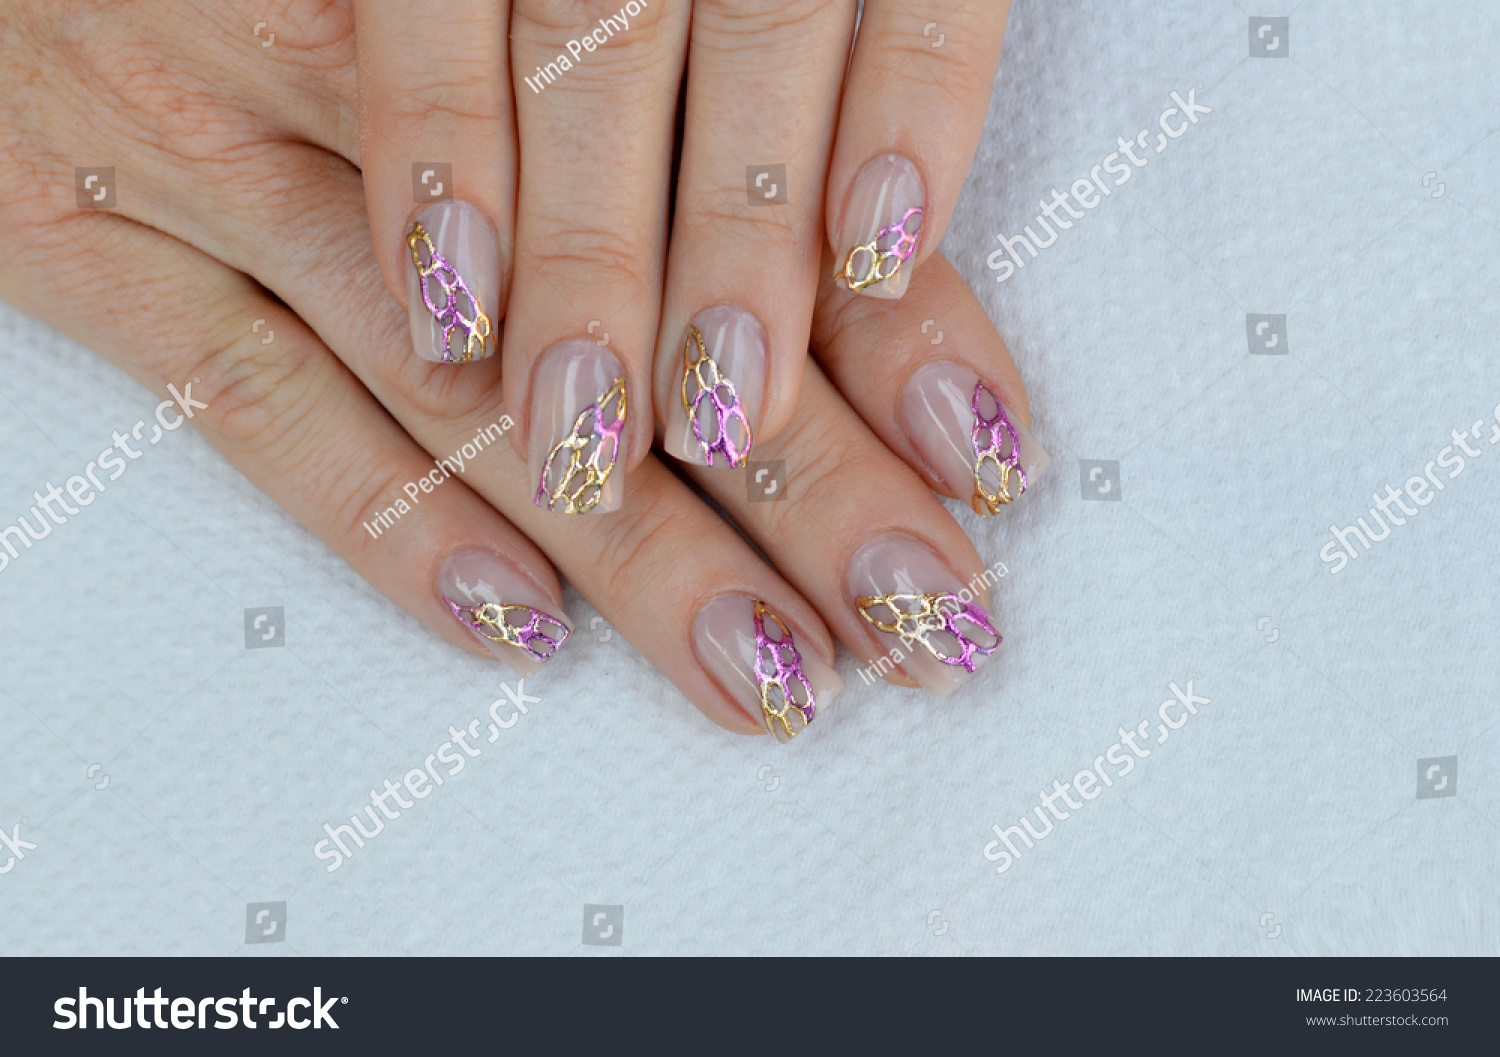 Beautiful natural nude nail art design stock photo 223603564 beautiful natural nude nail art design with gold and pink transfer foils prinsesfo Gallery